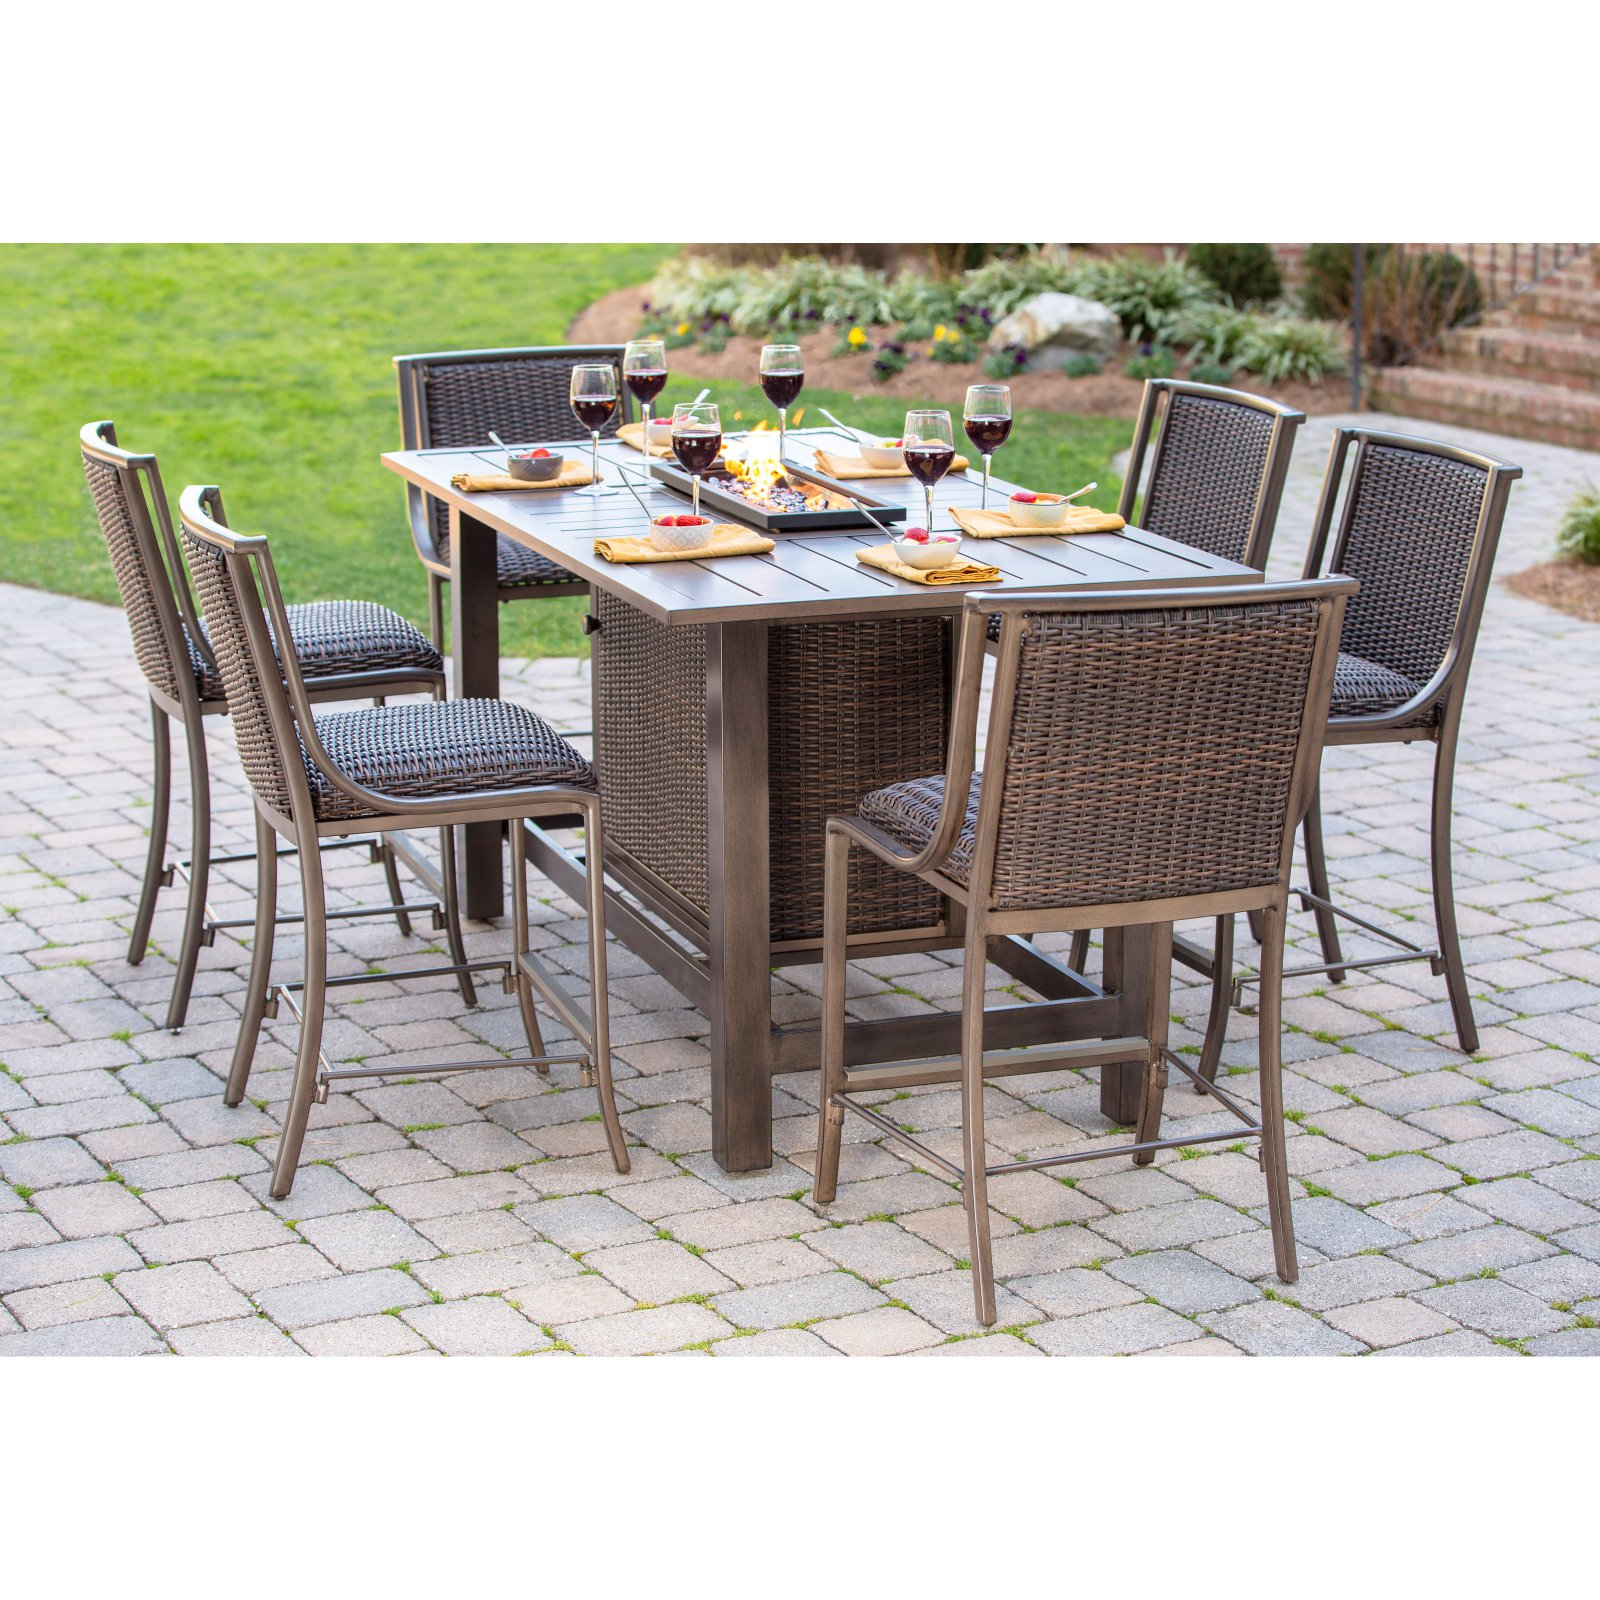 Belham Living Mirfield Bar Height Fire Pit Patio Dining Set By Agio